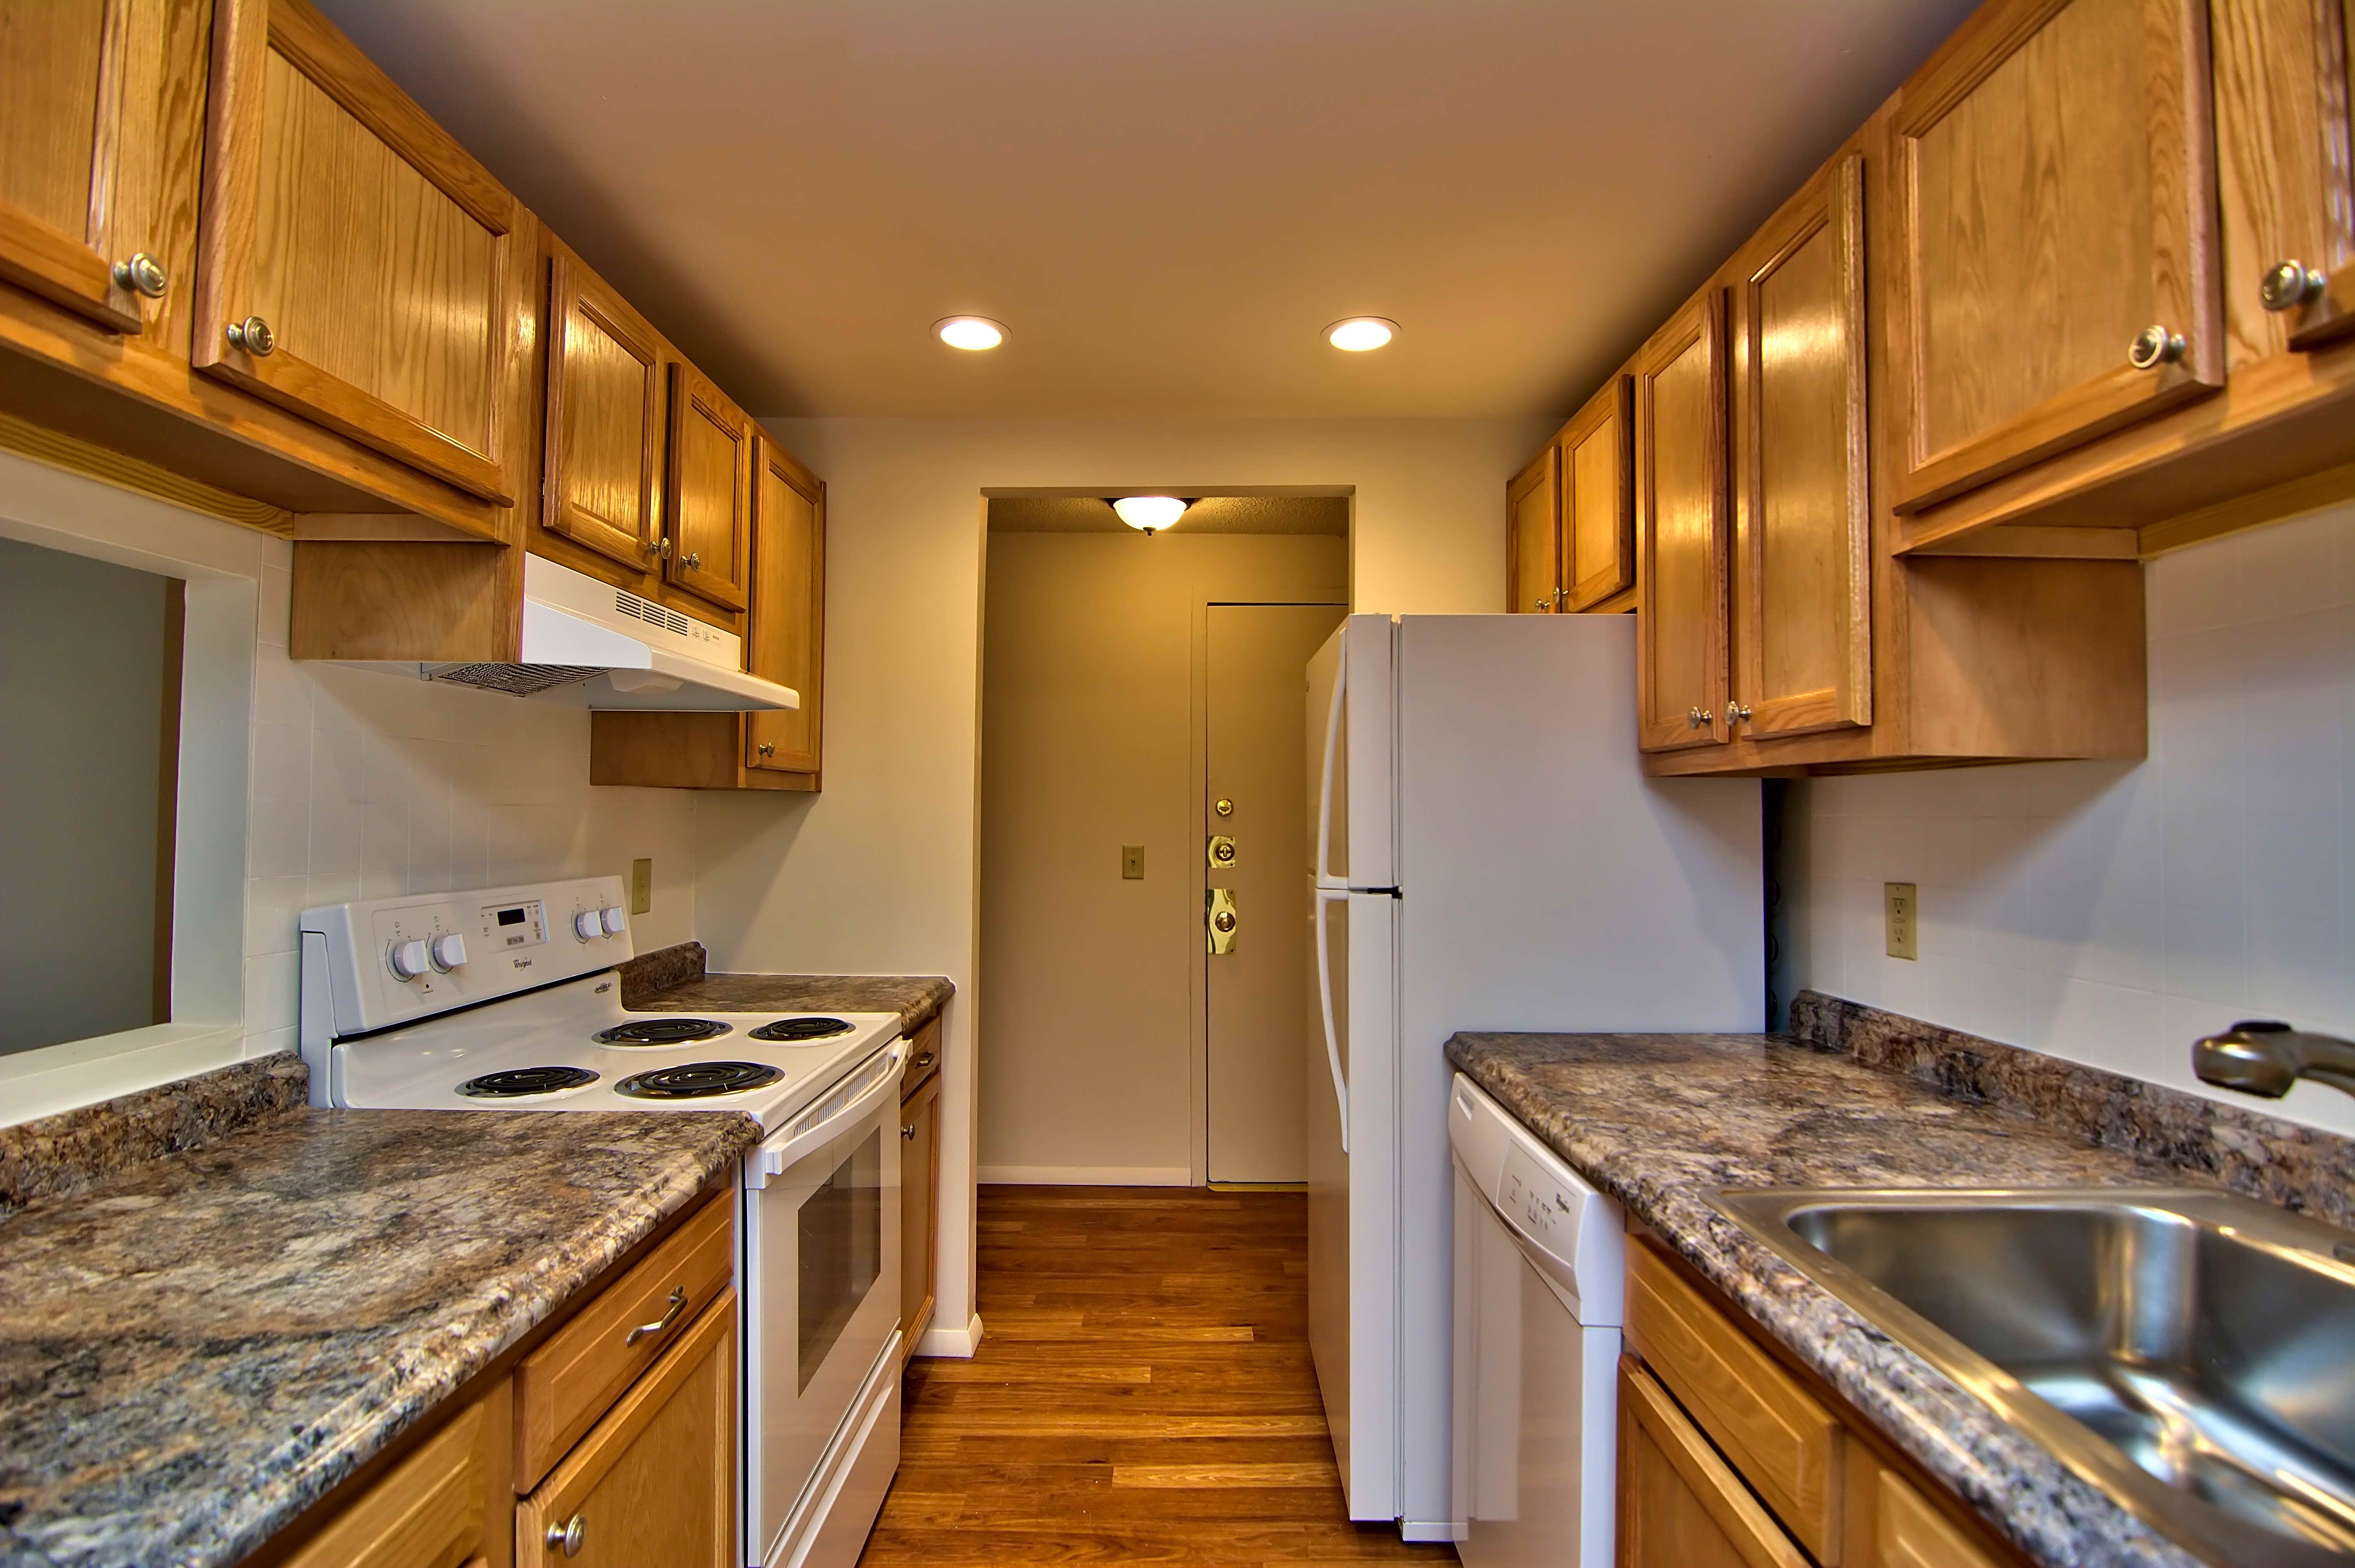 Apartments Near Marywood Applewood Acres for Marywood University Students in Scranton, PA